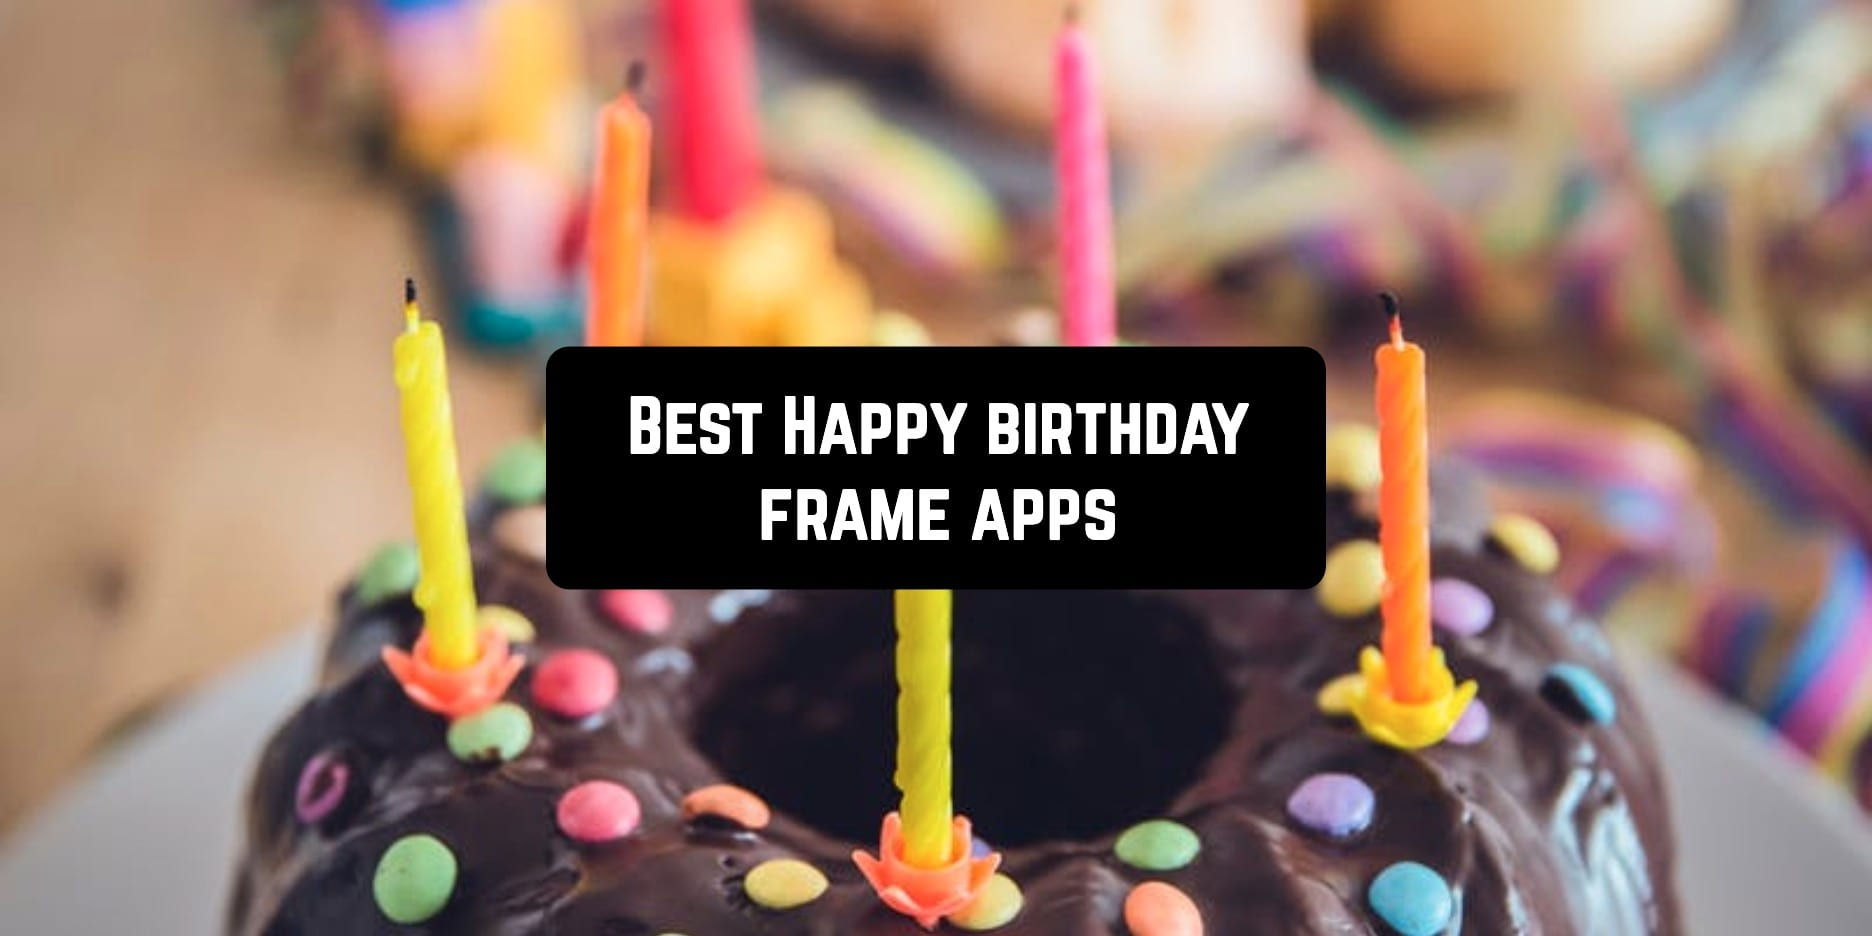 Best Happy birthday frame apps